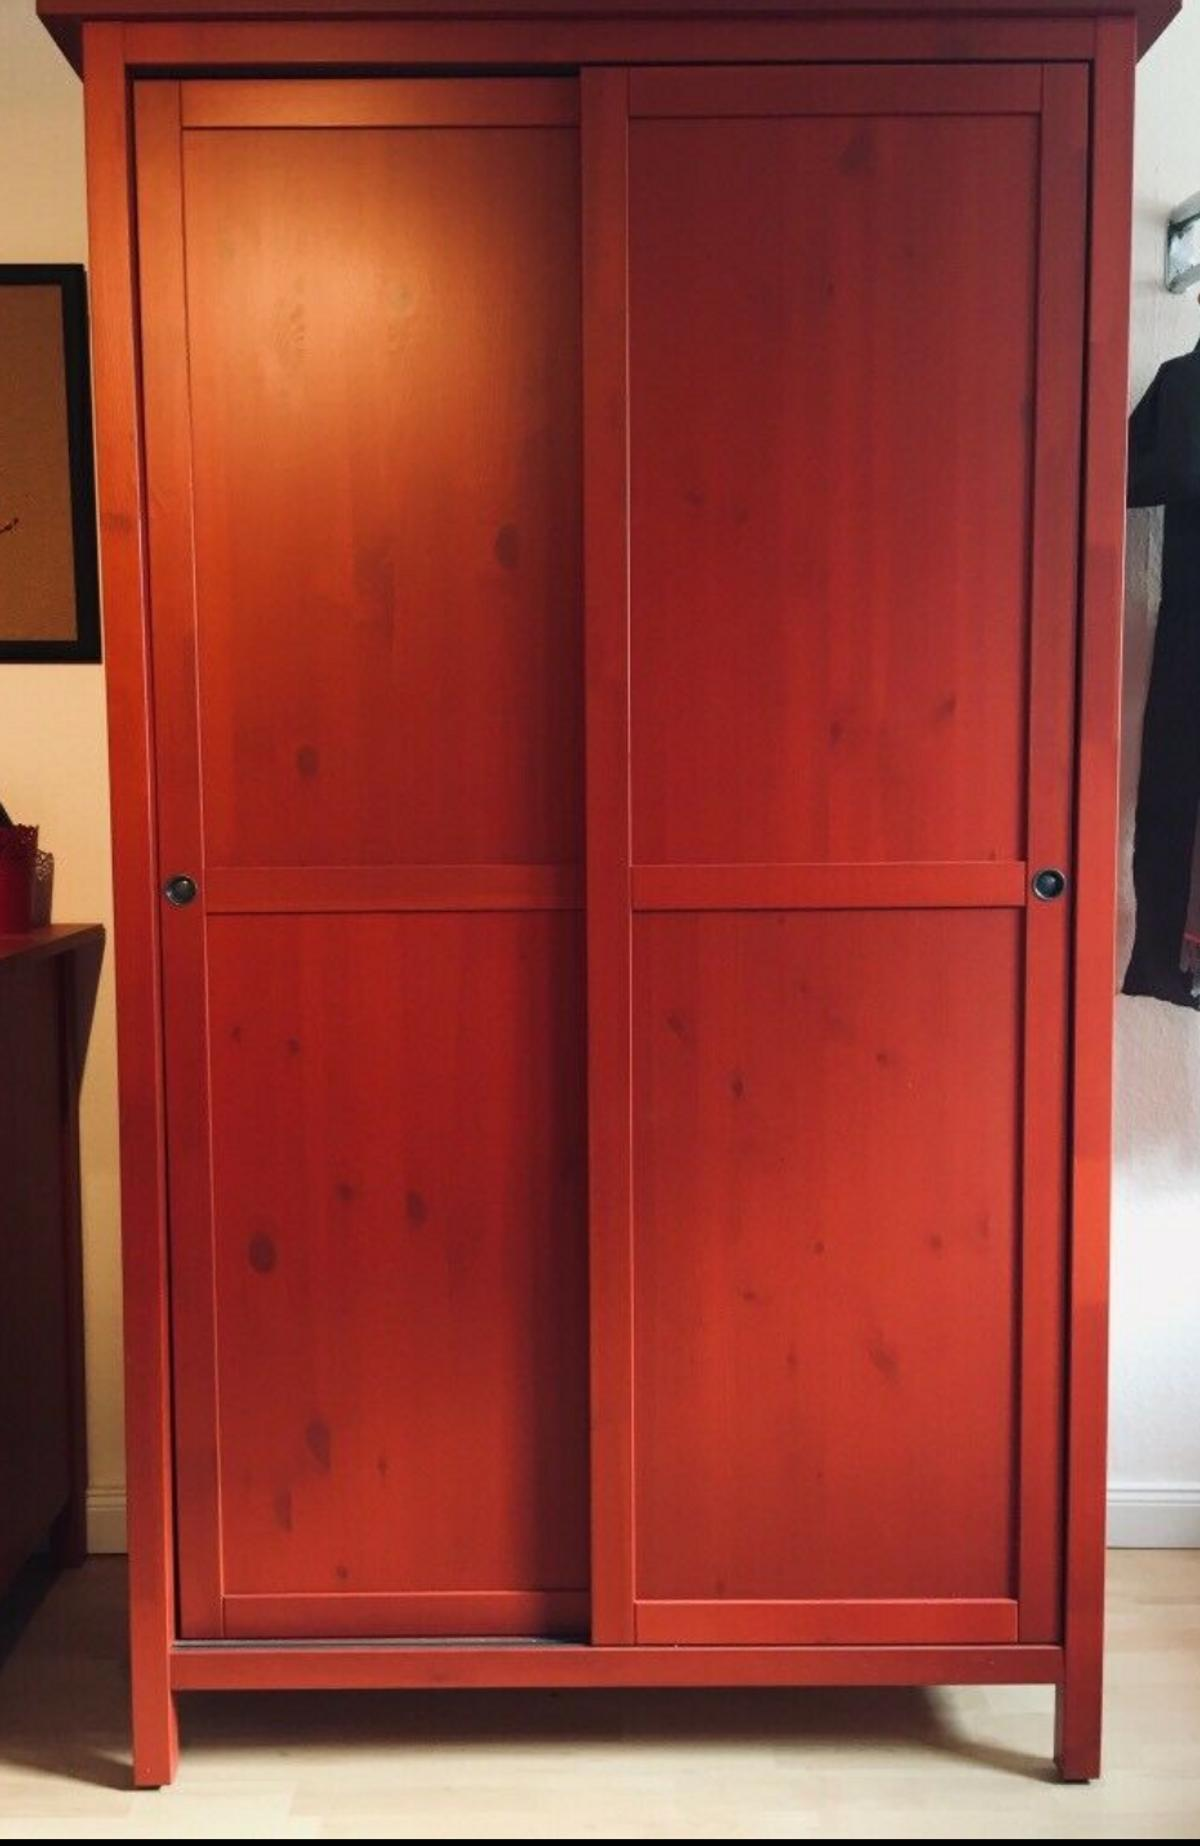 Ikea Hemnes Kleiderschrank Rot In 6800 Feldkirch For 200 00 For